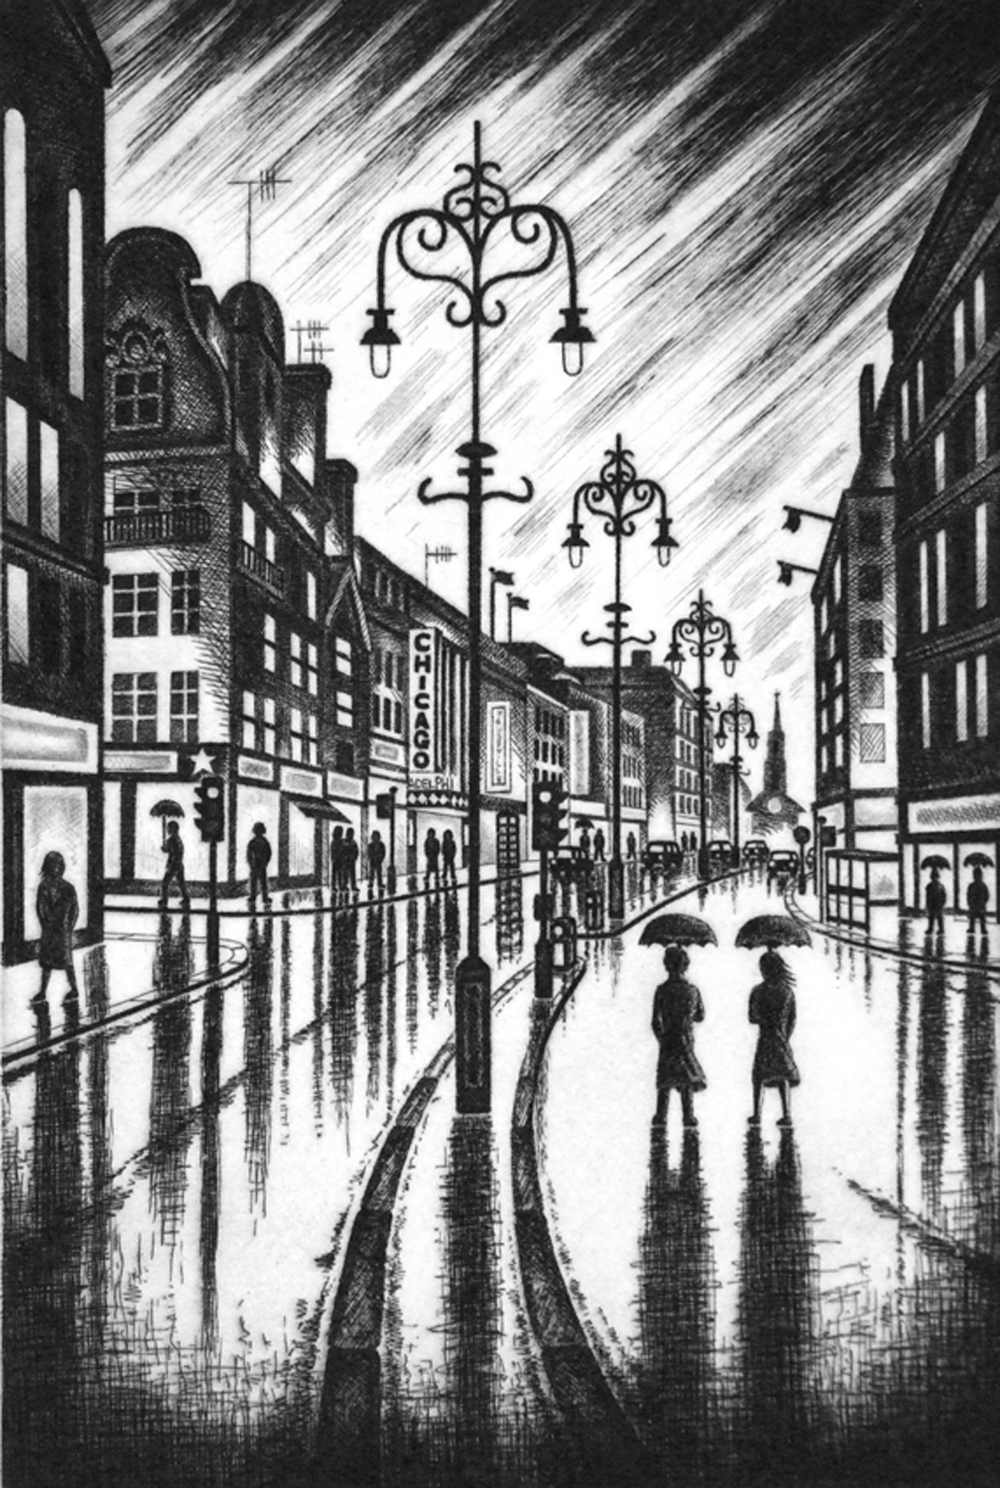 John Duffin   City Rain (The Strand, London WC2)   etching